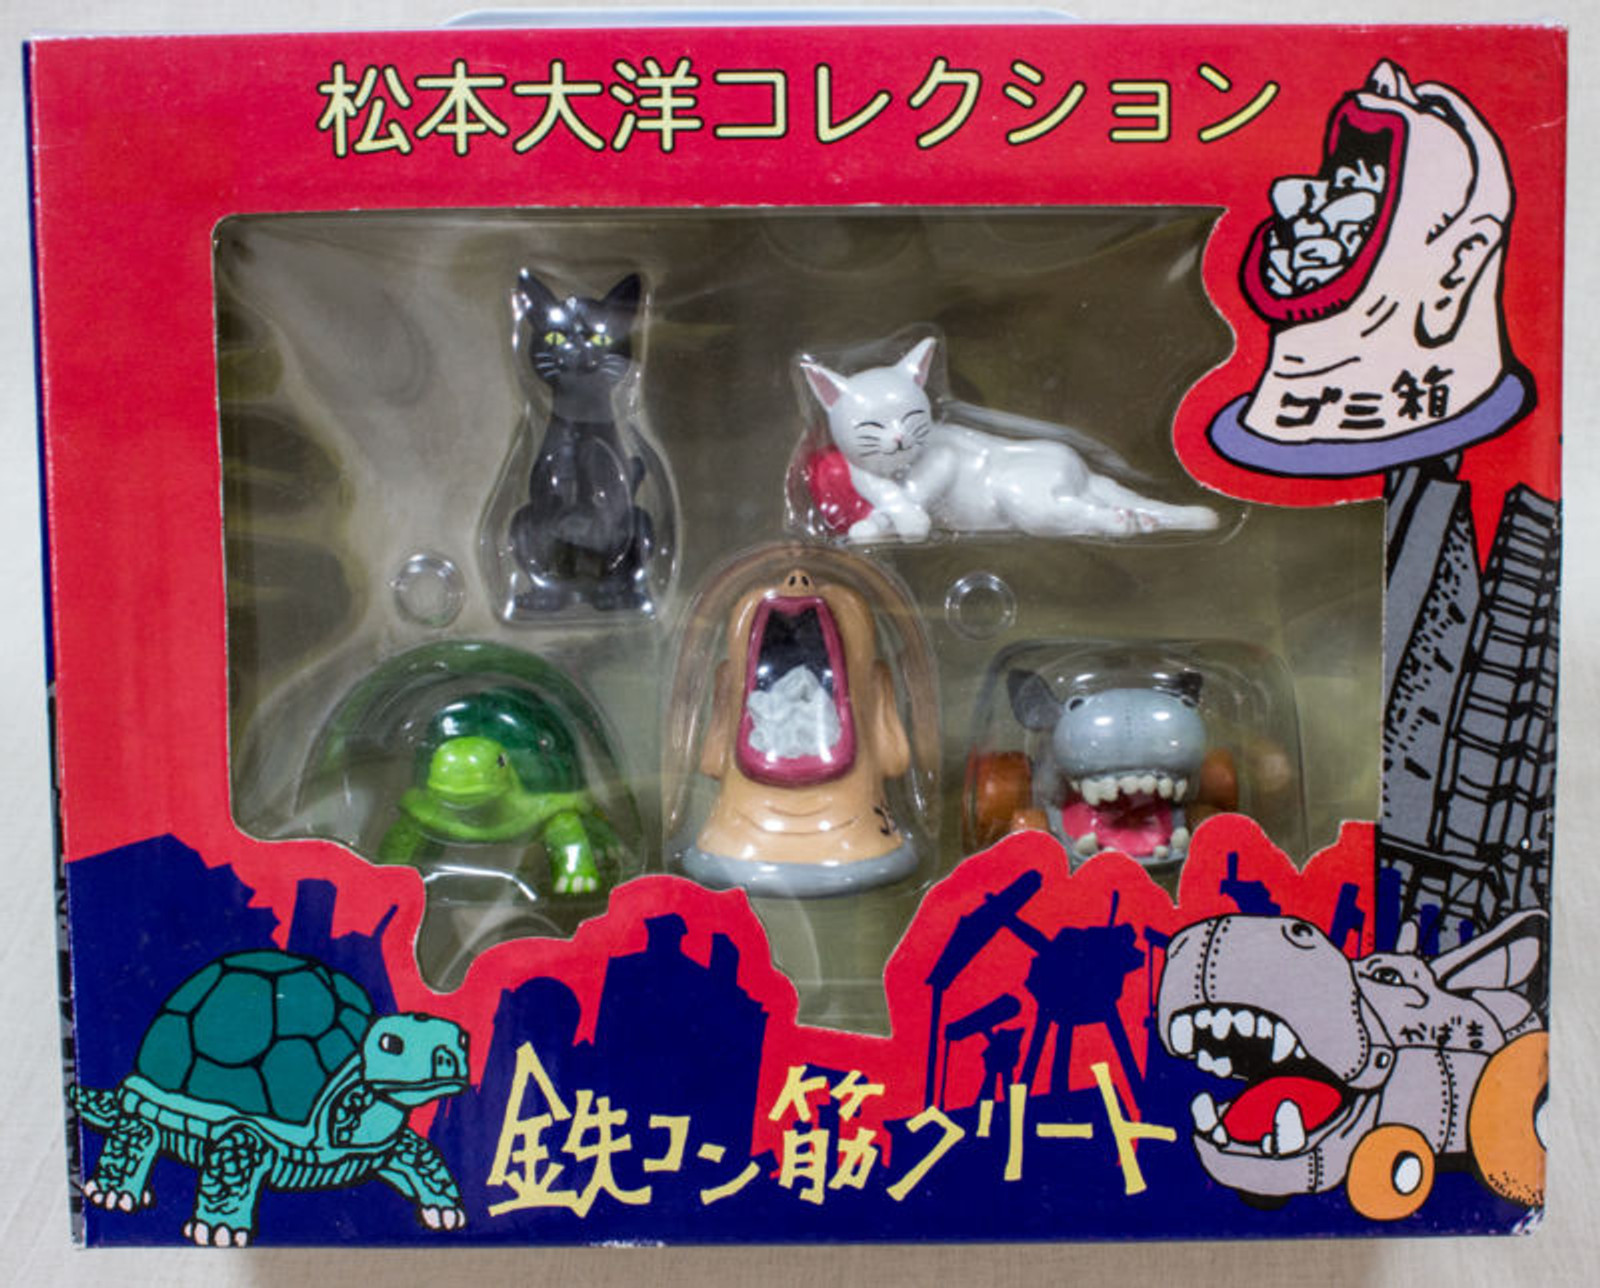 TEKKON KINKREET BLACK & WHITE Collection Figure Set Taiyo Matsumoto JAPAN ANIME